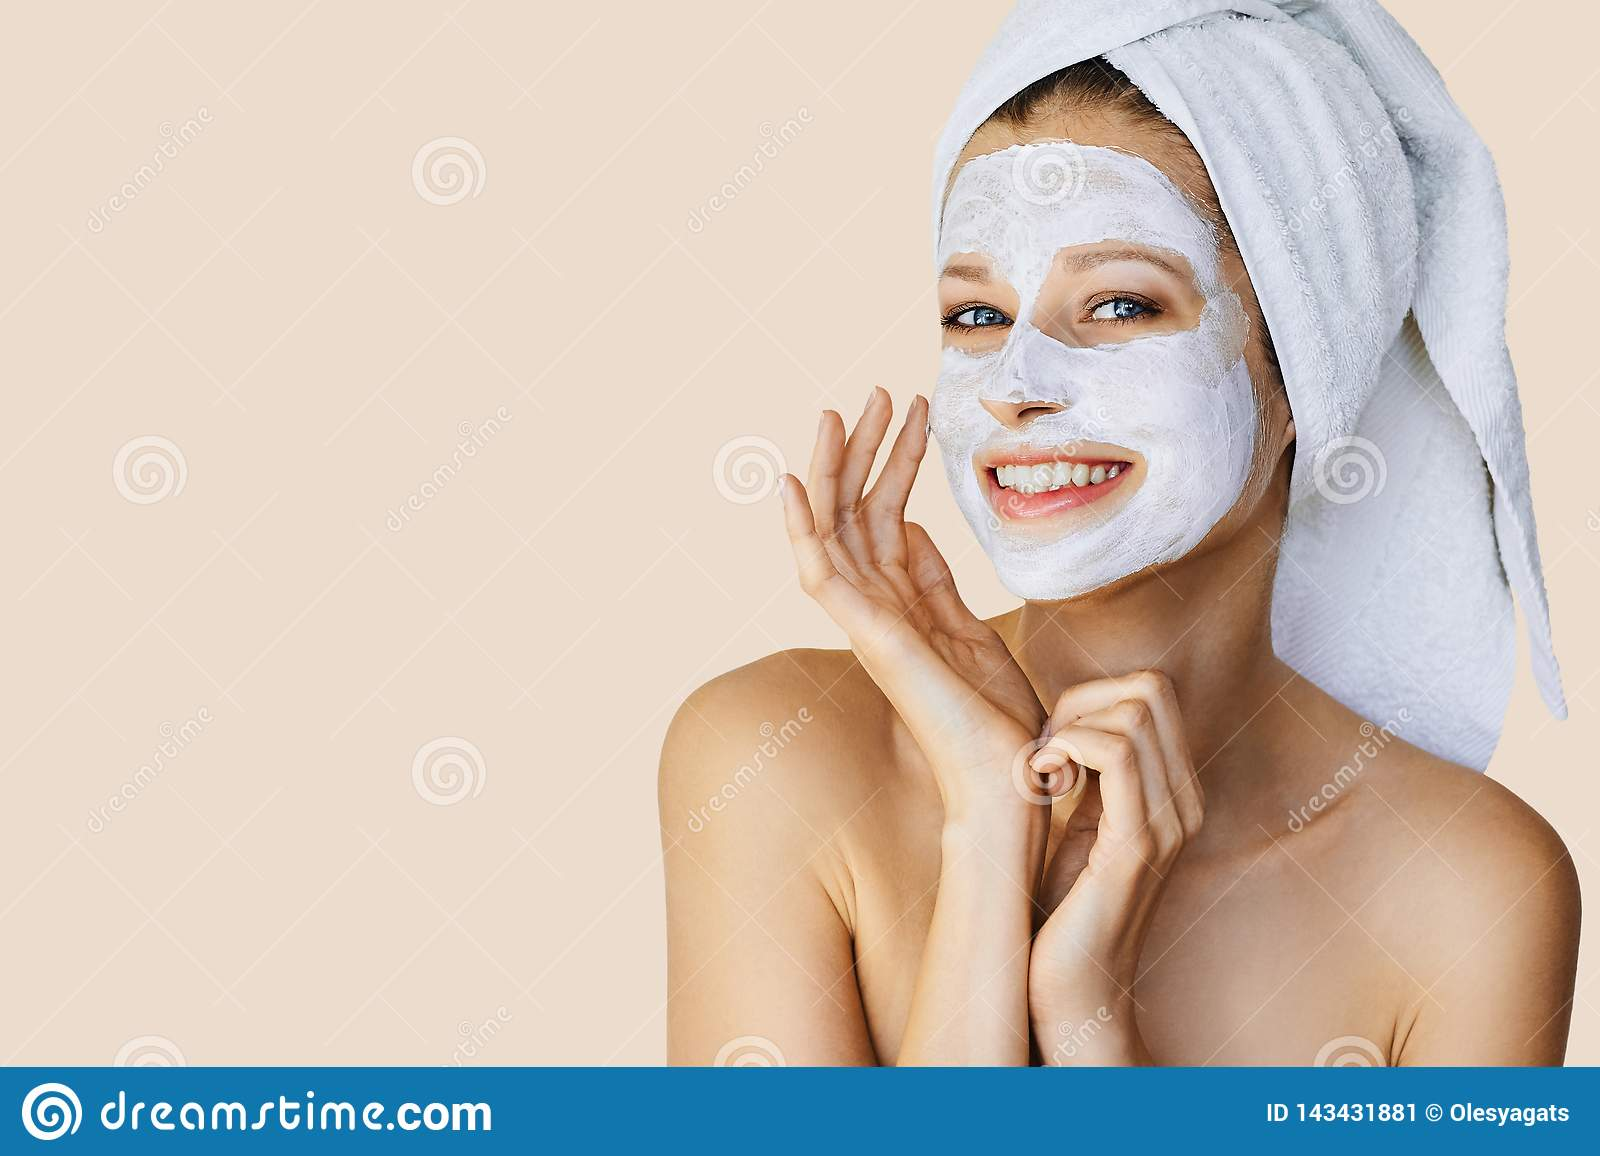 Beautiful young woman applying facial mask on her face. Skin care and treatment, spa, natural beauty and cosmetology concept